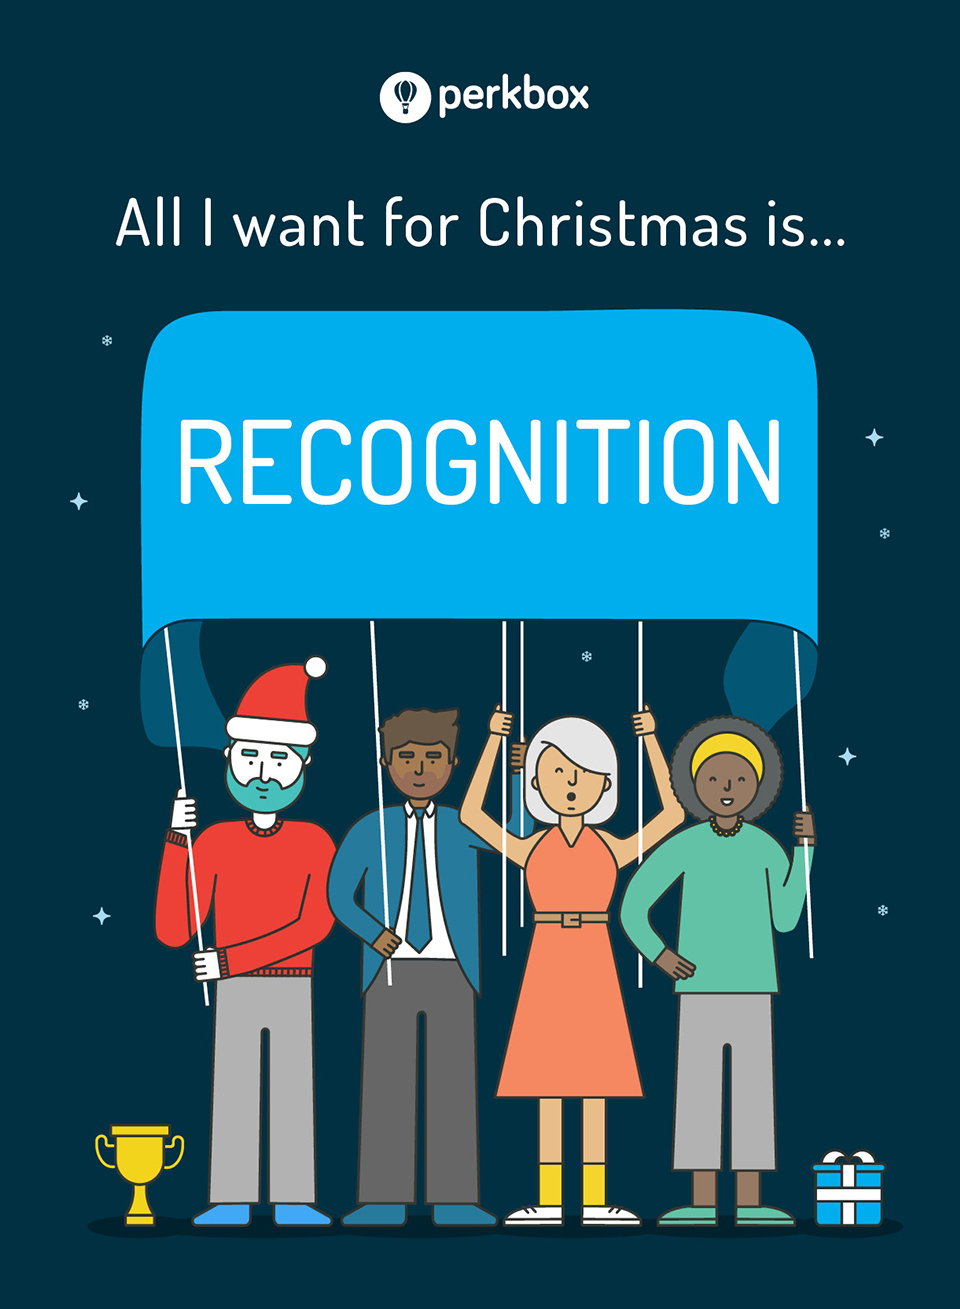 All I want for Christmas is Recognition